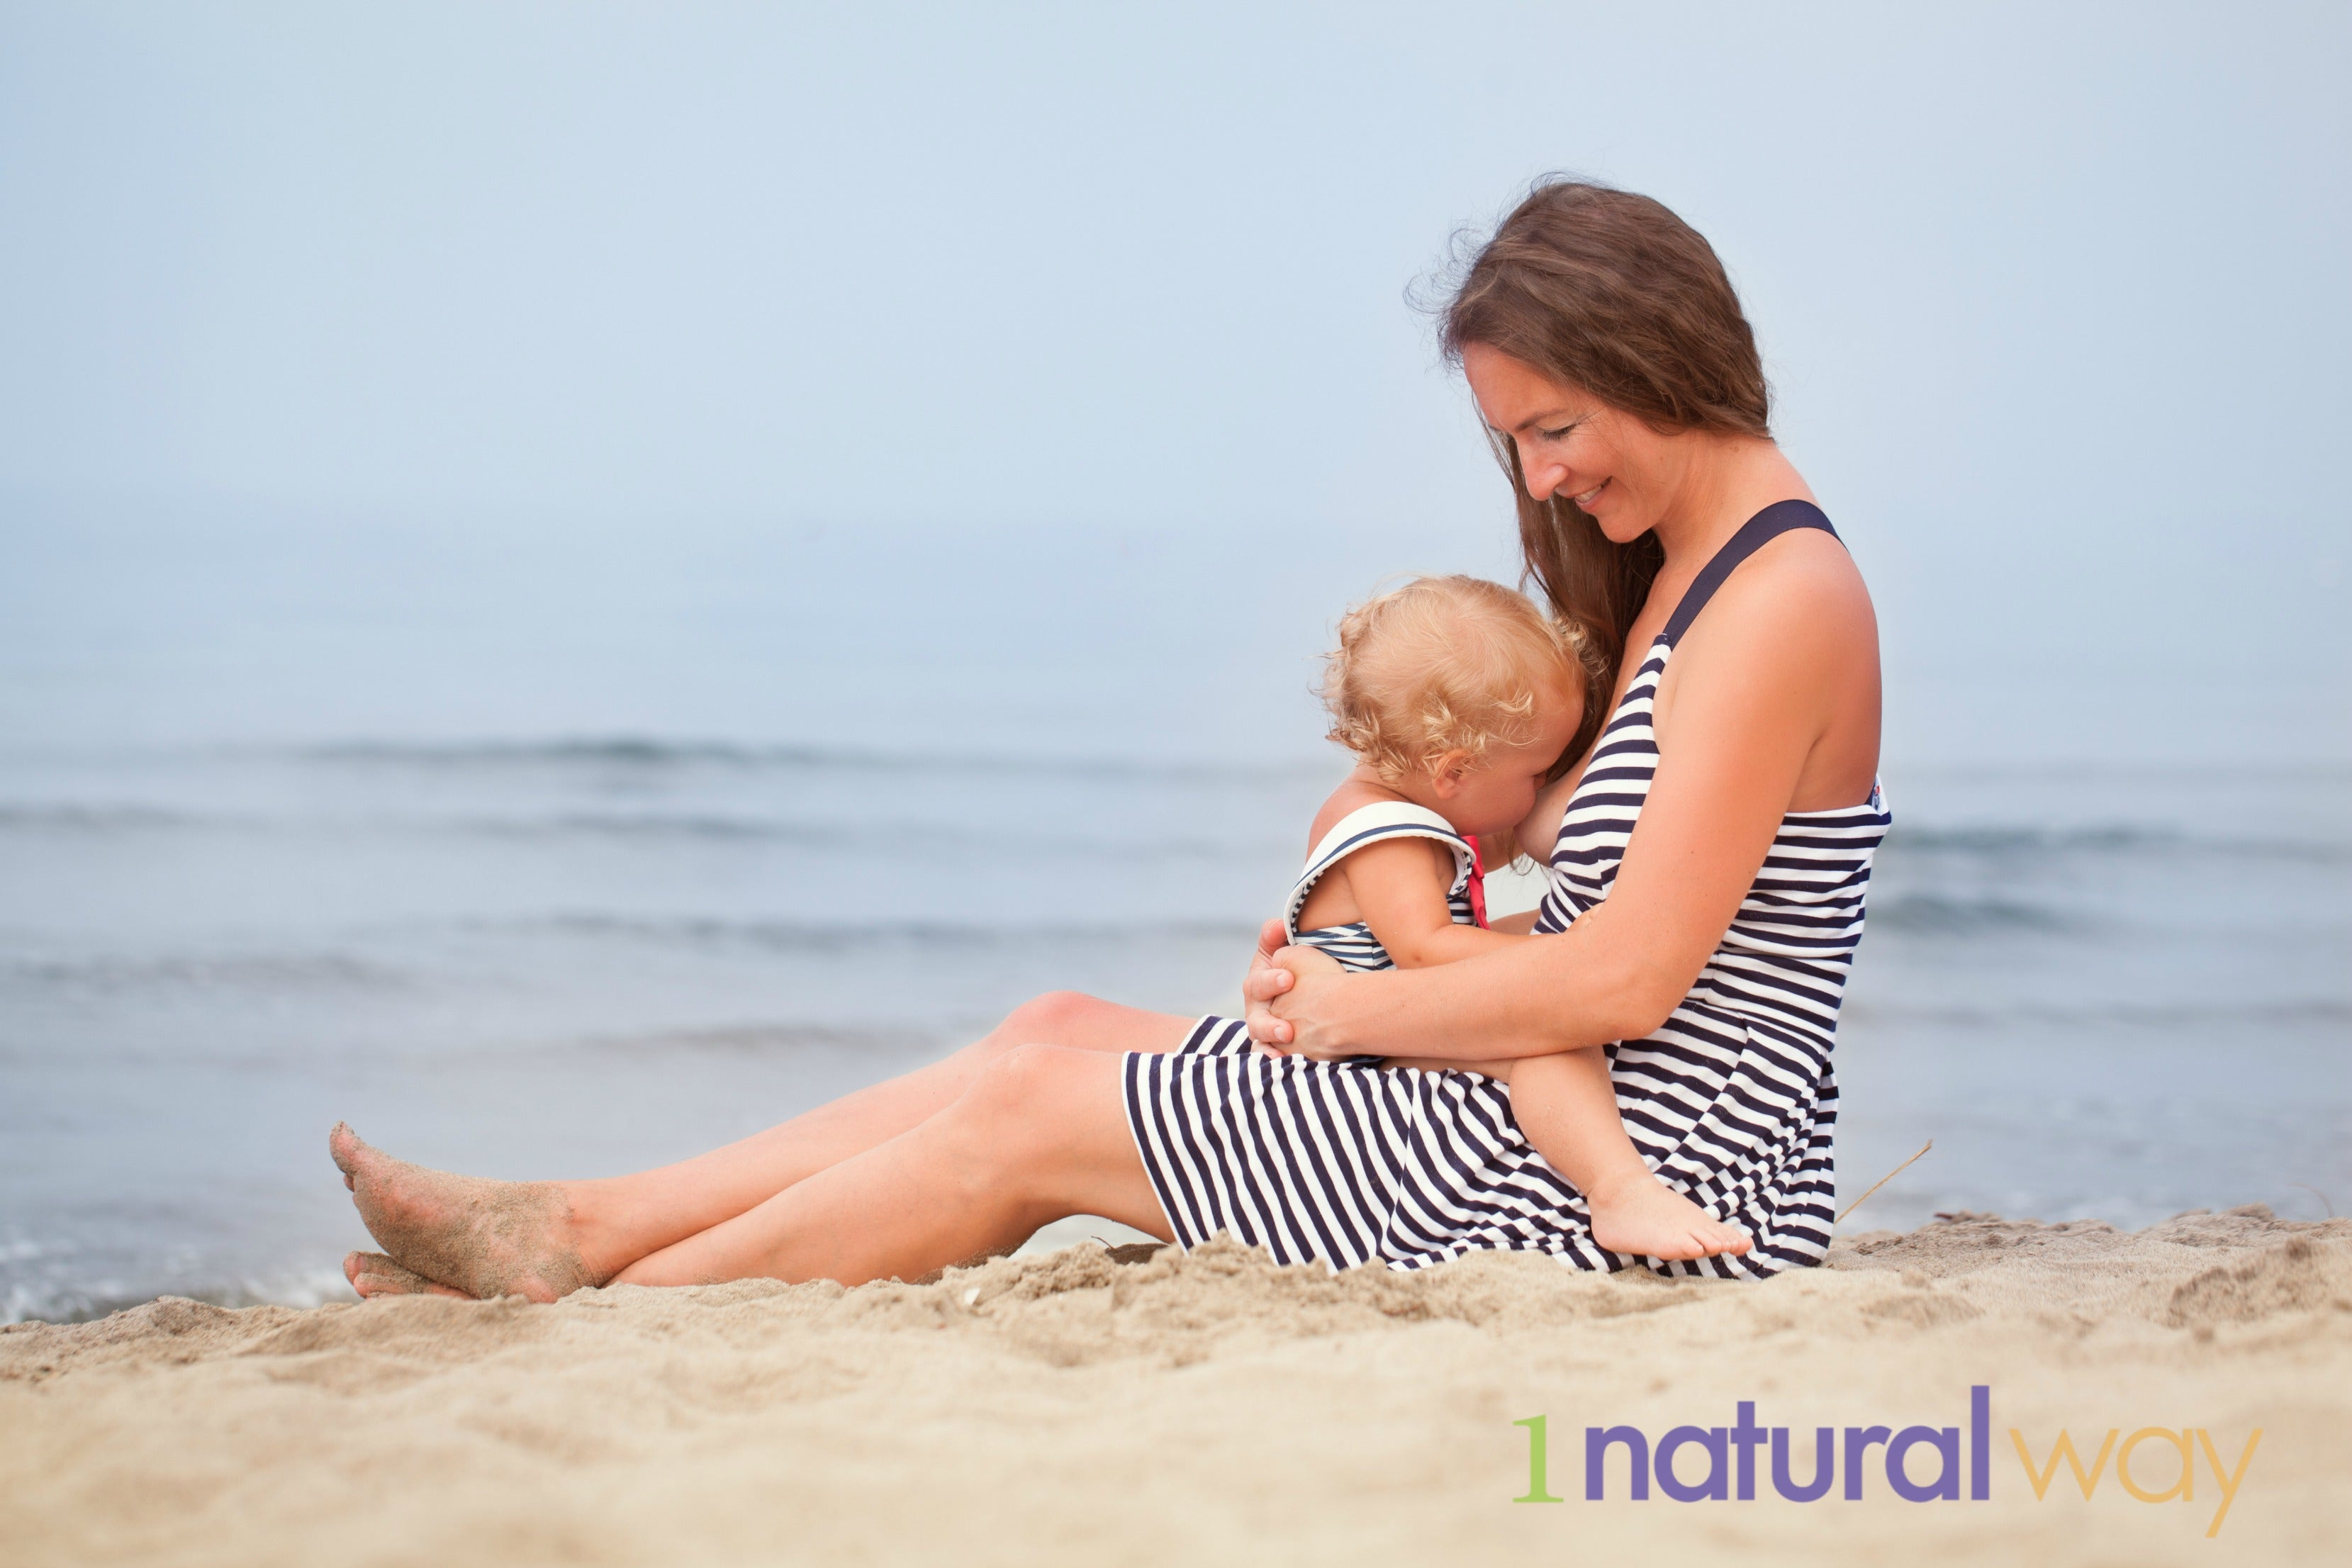 1 Natural Way - Mom and Baby on Beach